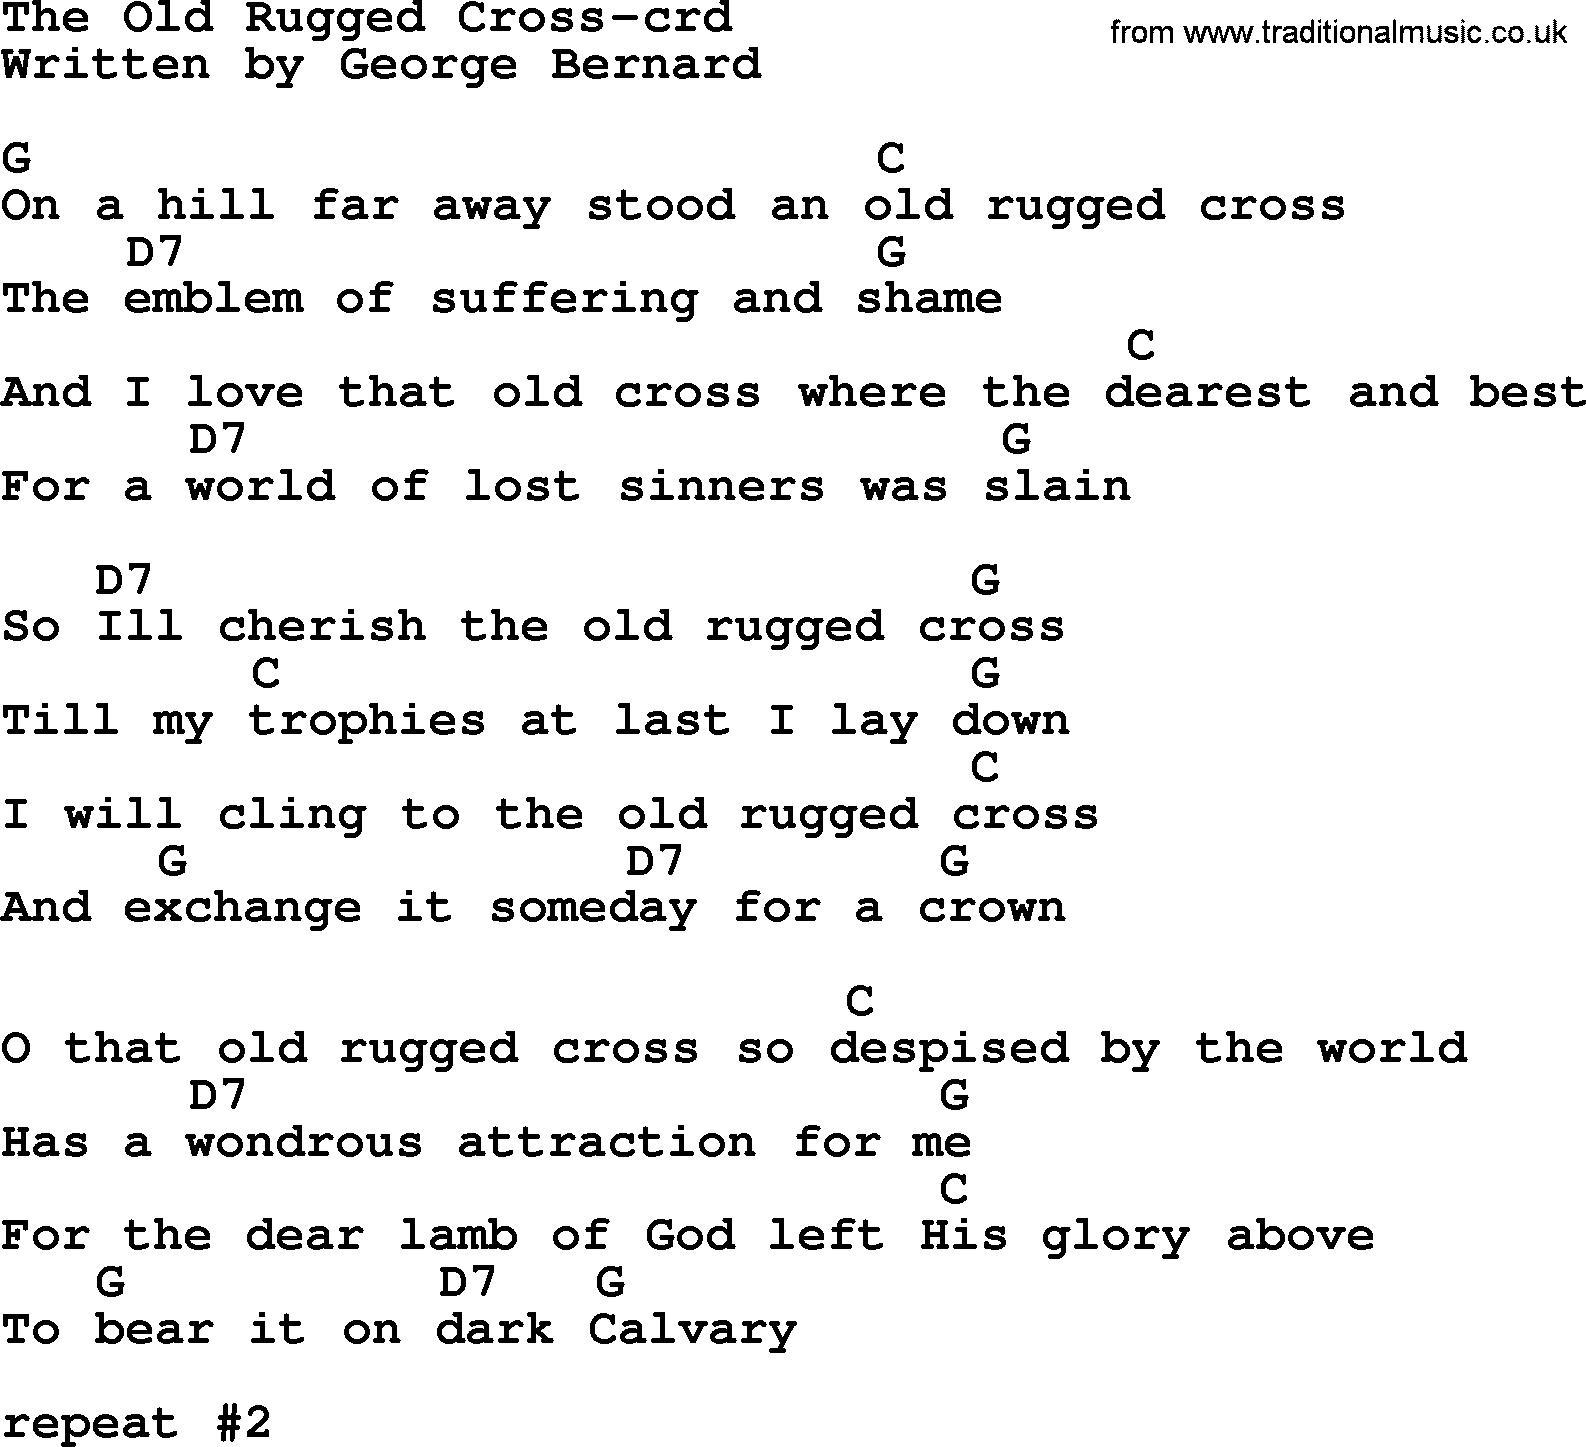 Top 500 Hymn: The Old Rugged Cross, Lyrics And Chords